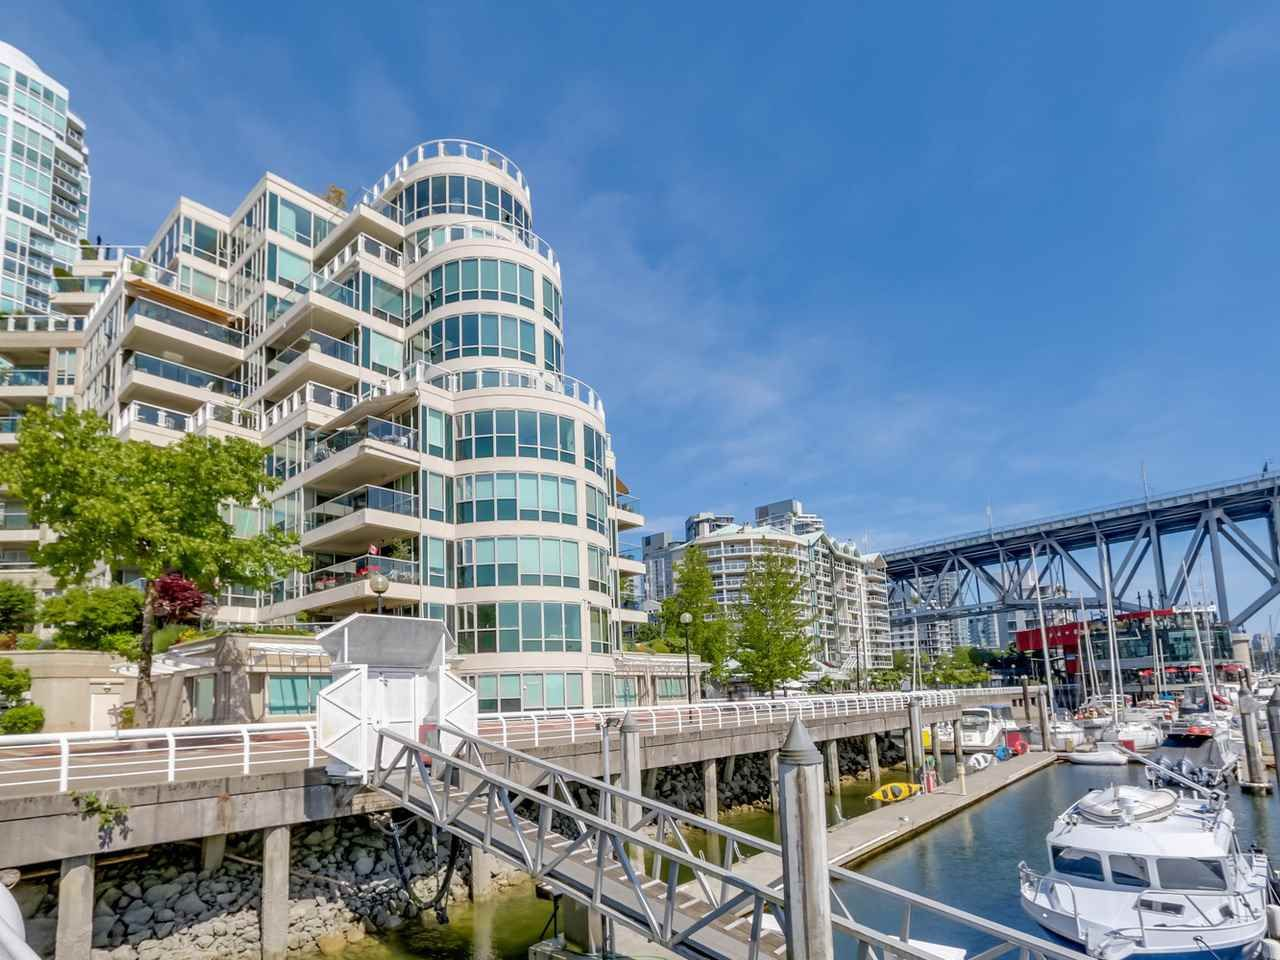 """Main Photo: 401 1600 HORNBY Street in Vancouver: Yaletown Condo for sale in """"Yacht Harbour Pointe"""" (Vancouver West)  : MLS®# R2075174"""